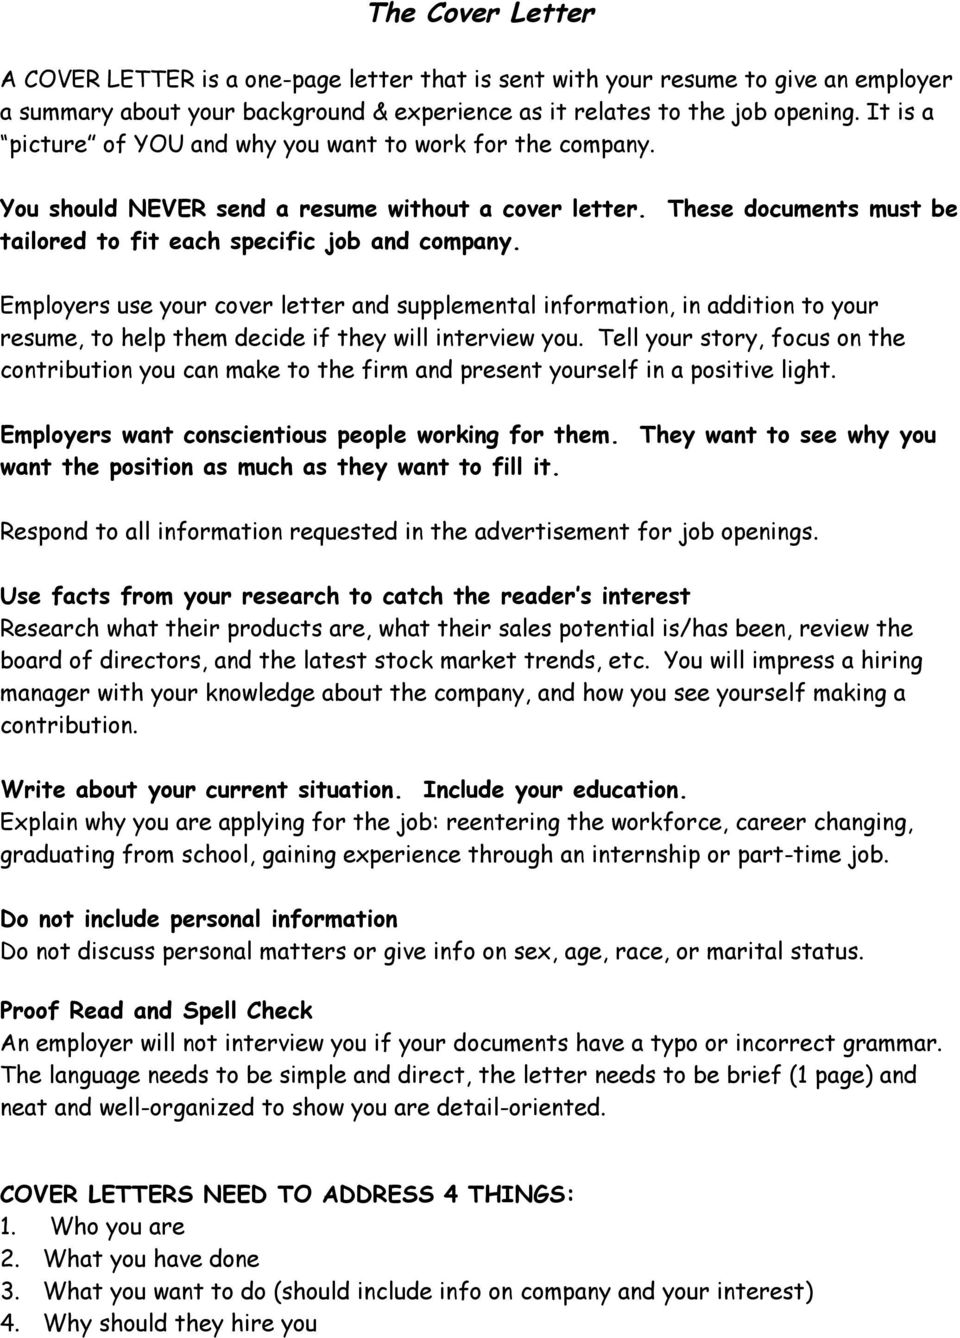 The Cover Letter You Should NEVER Send A Resume Without A